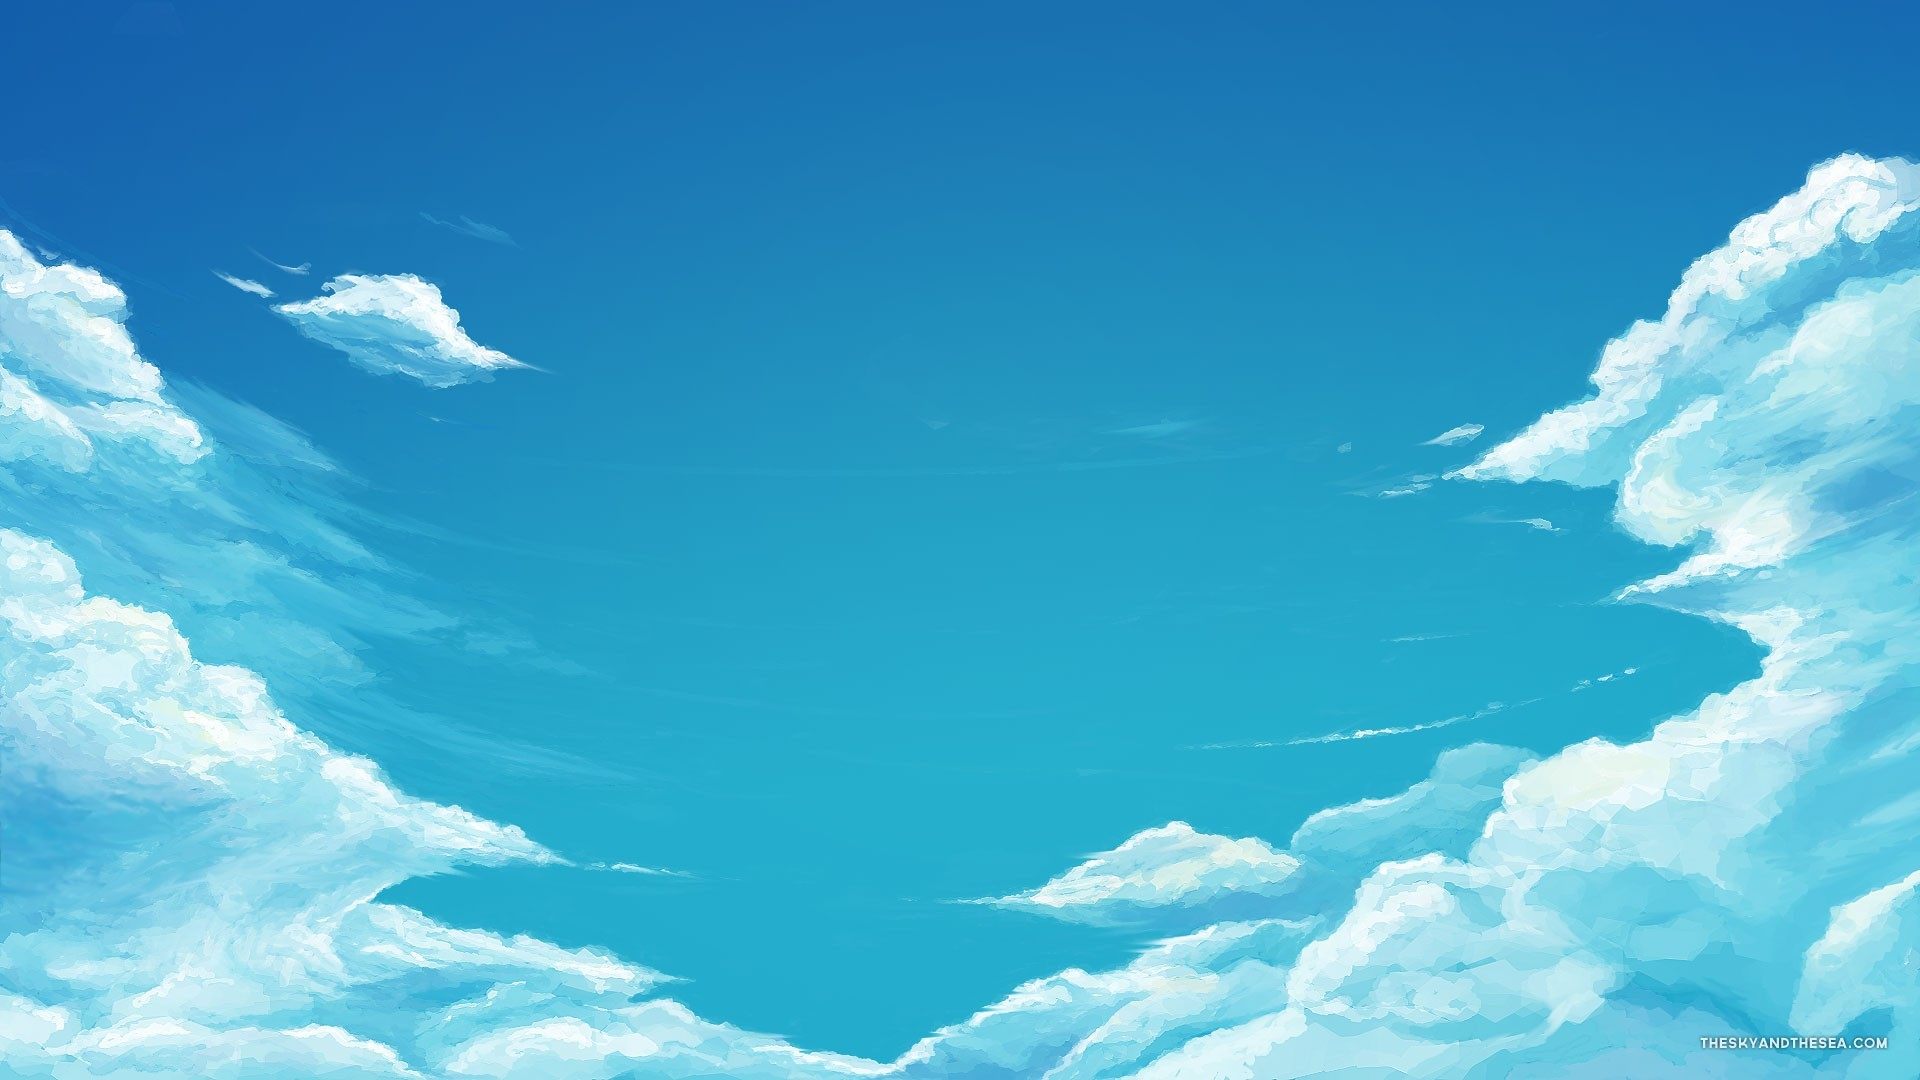 Very Cool Blue Sky Wallpaper